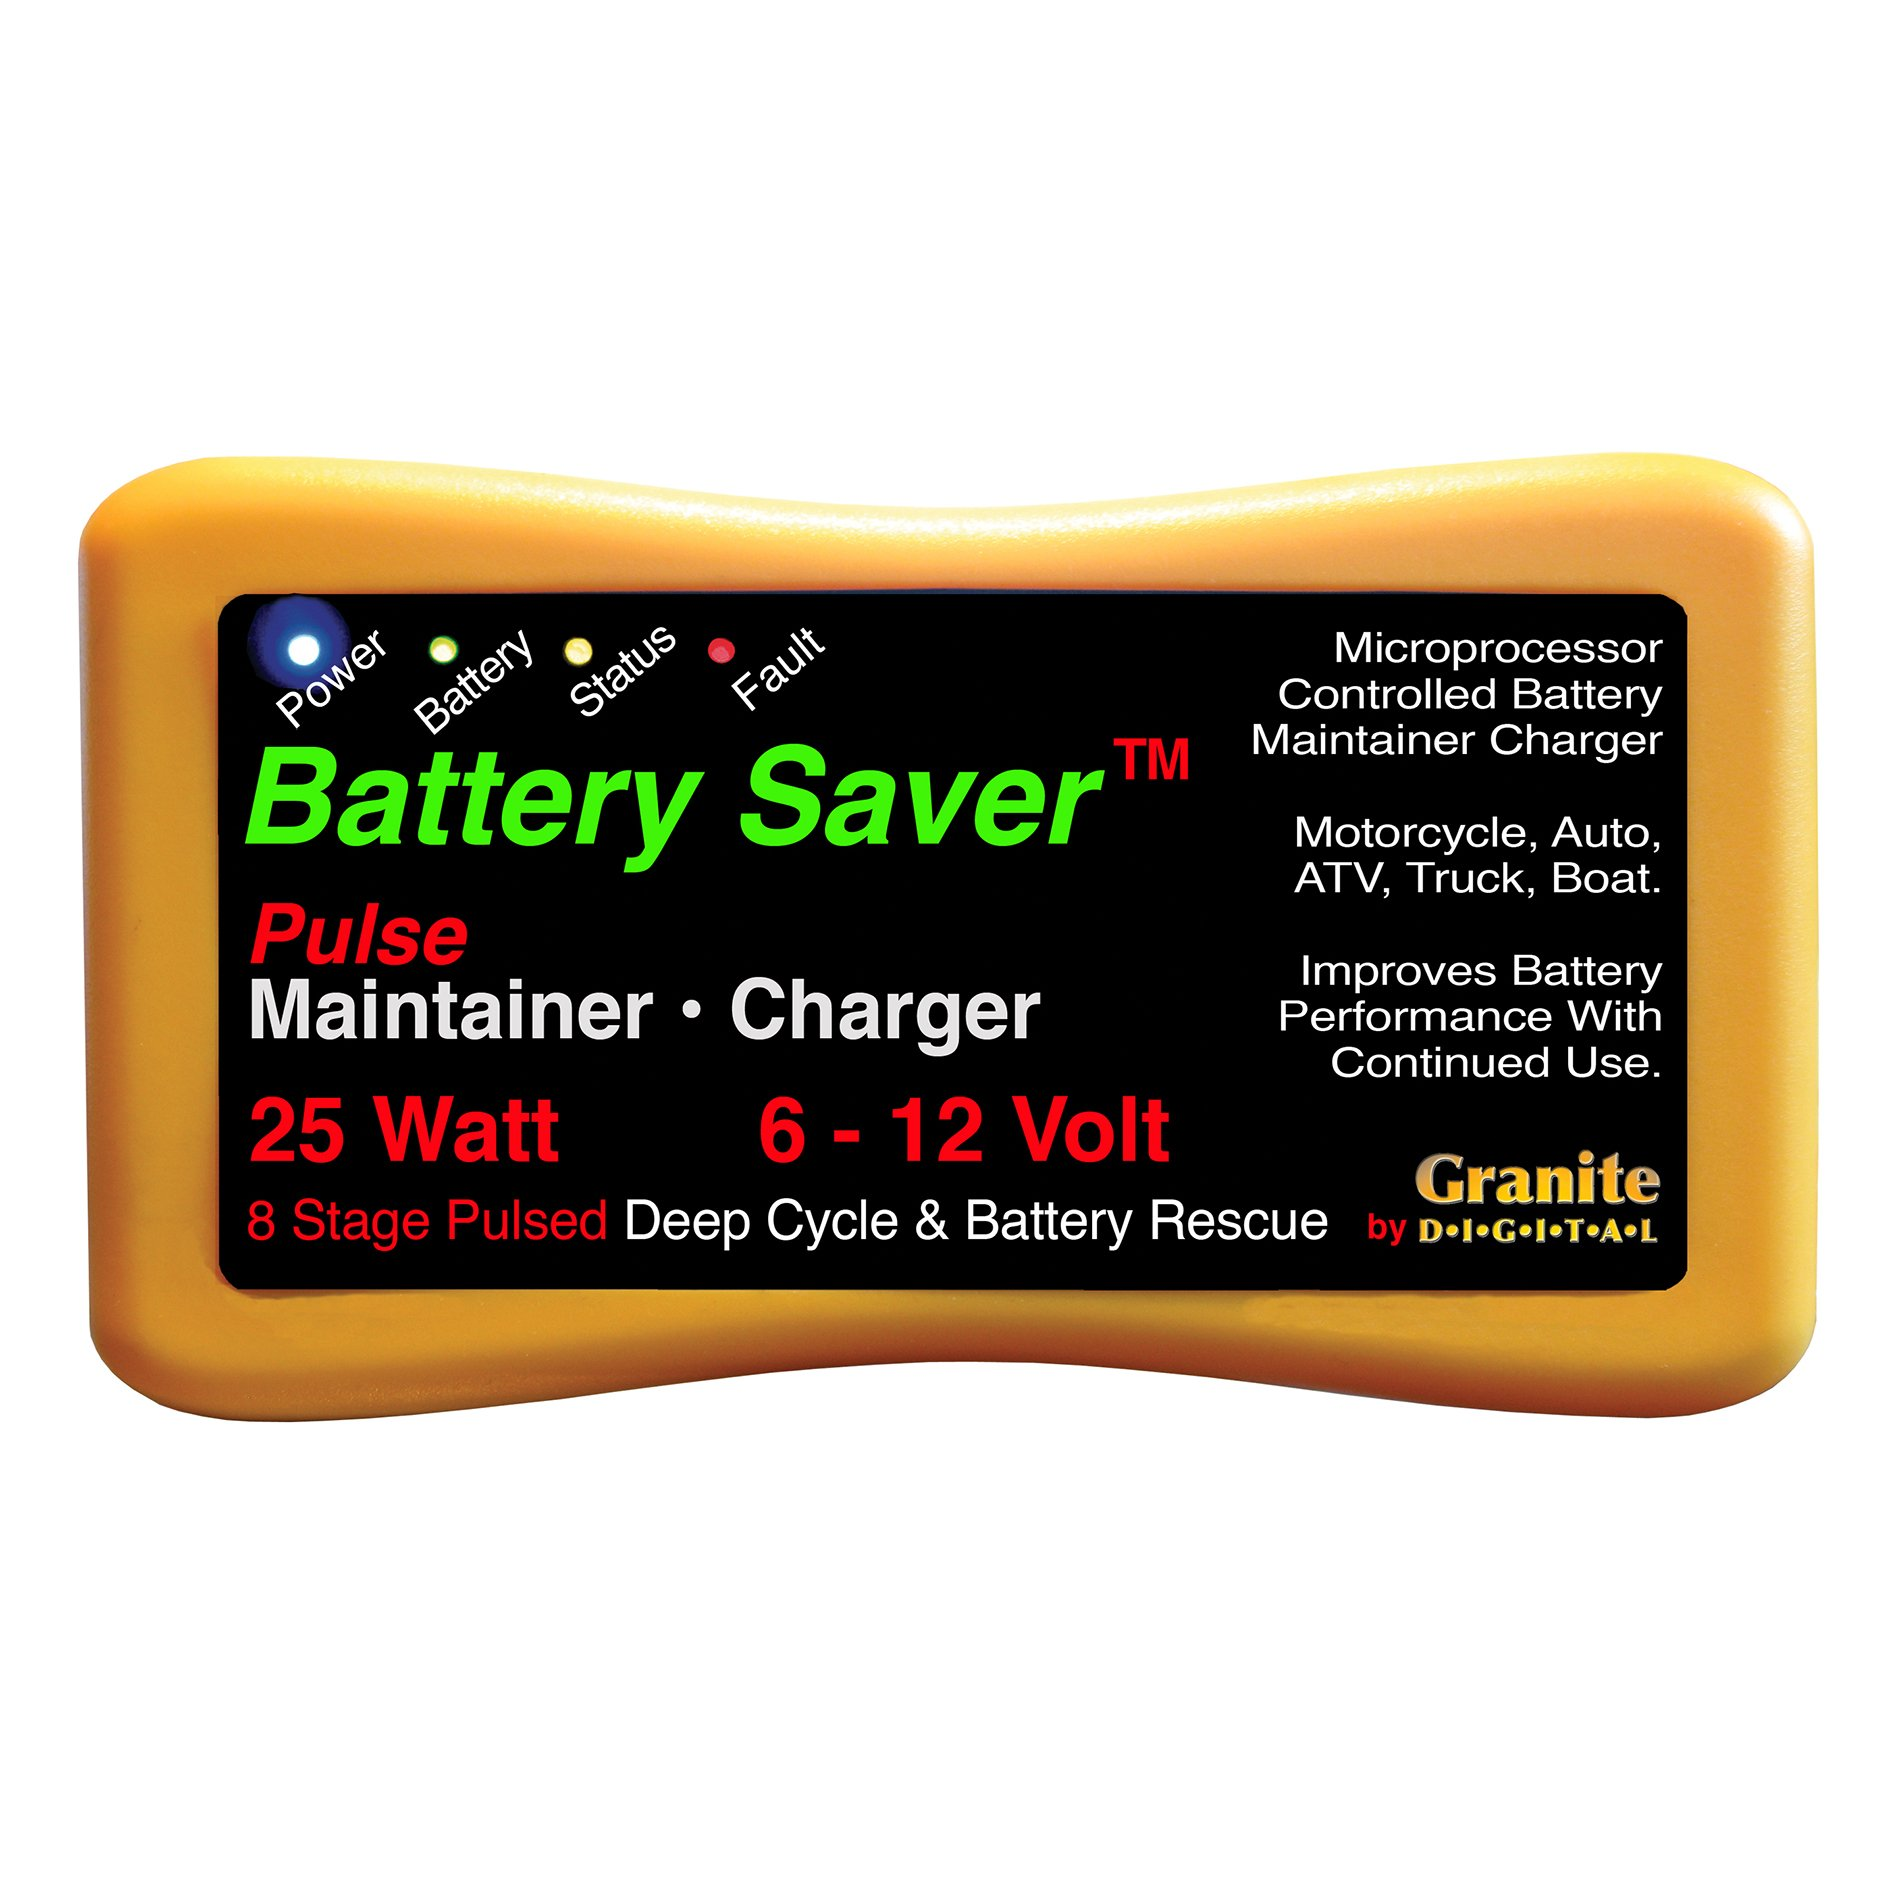 Save A Battery 3015 12 Volt/25 Watt Battery Saver/Maintainer and Battery Rescue by Battery Saver (Image #5)